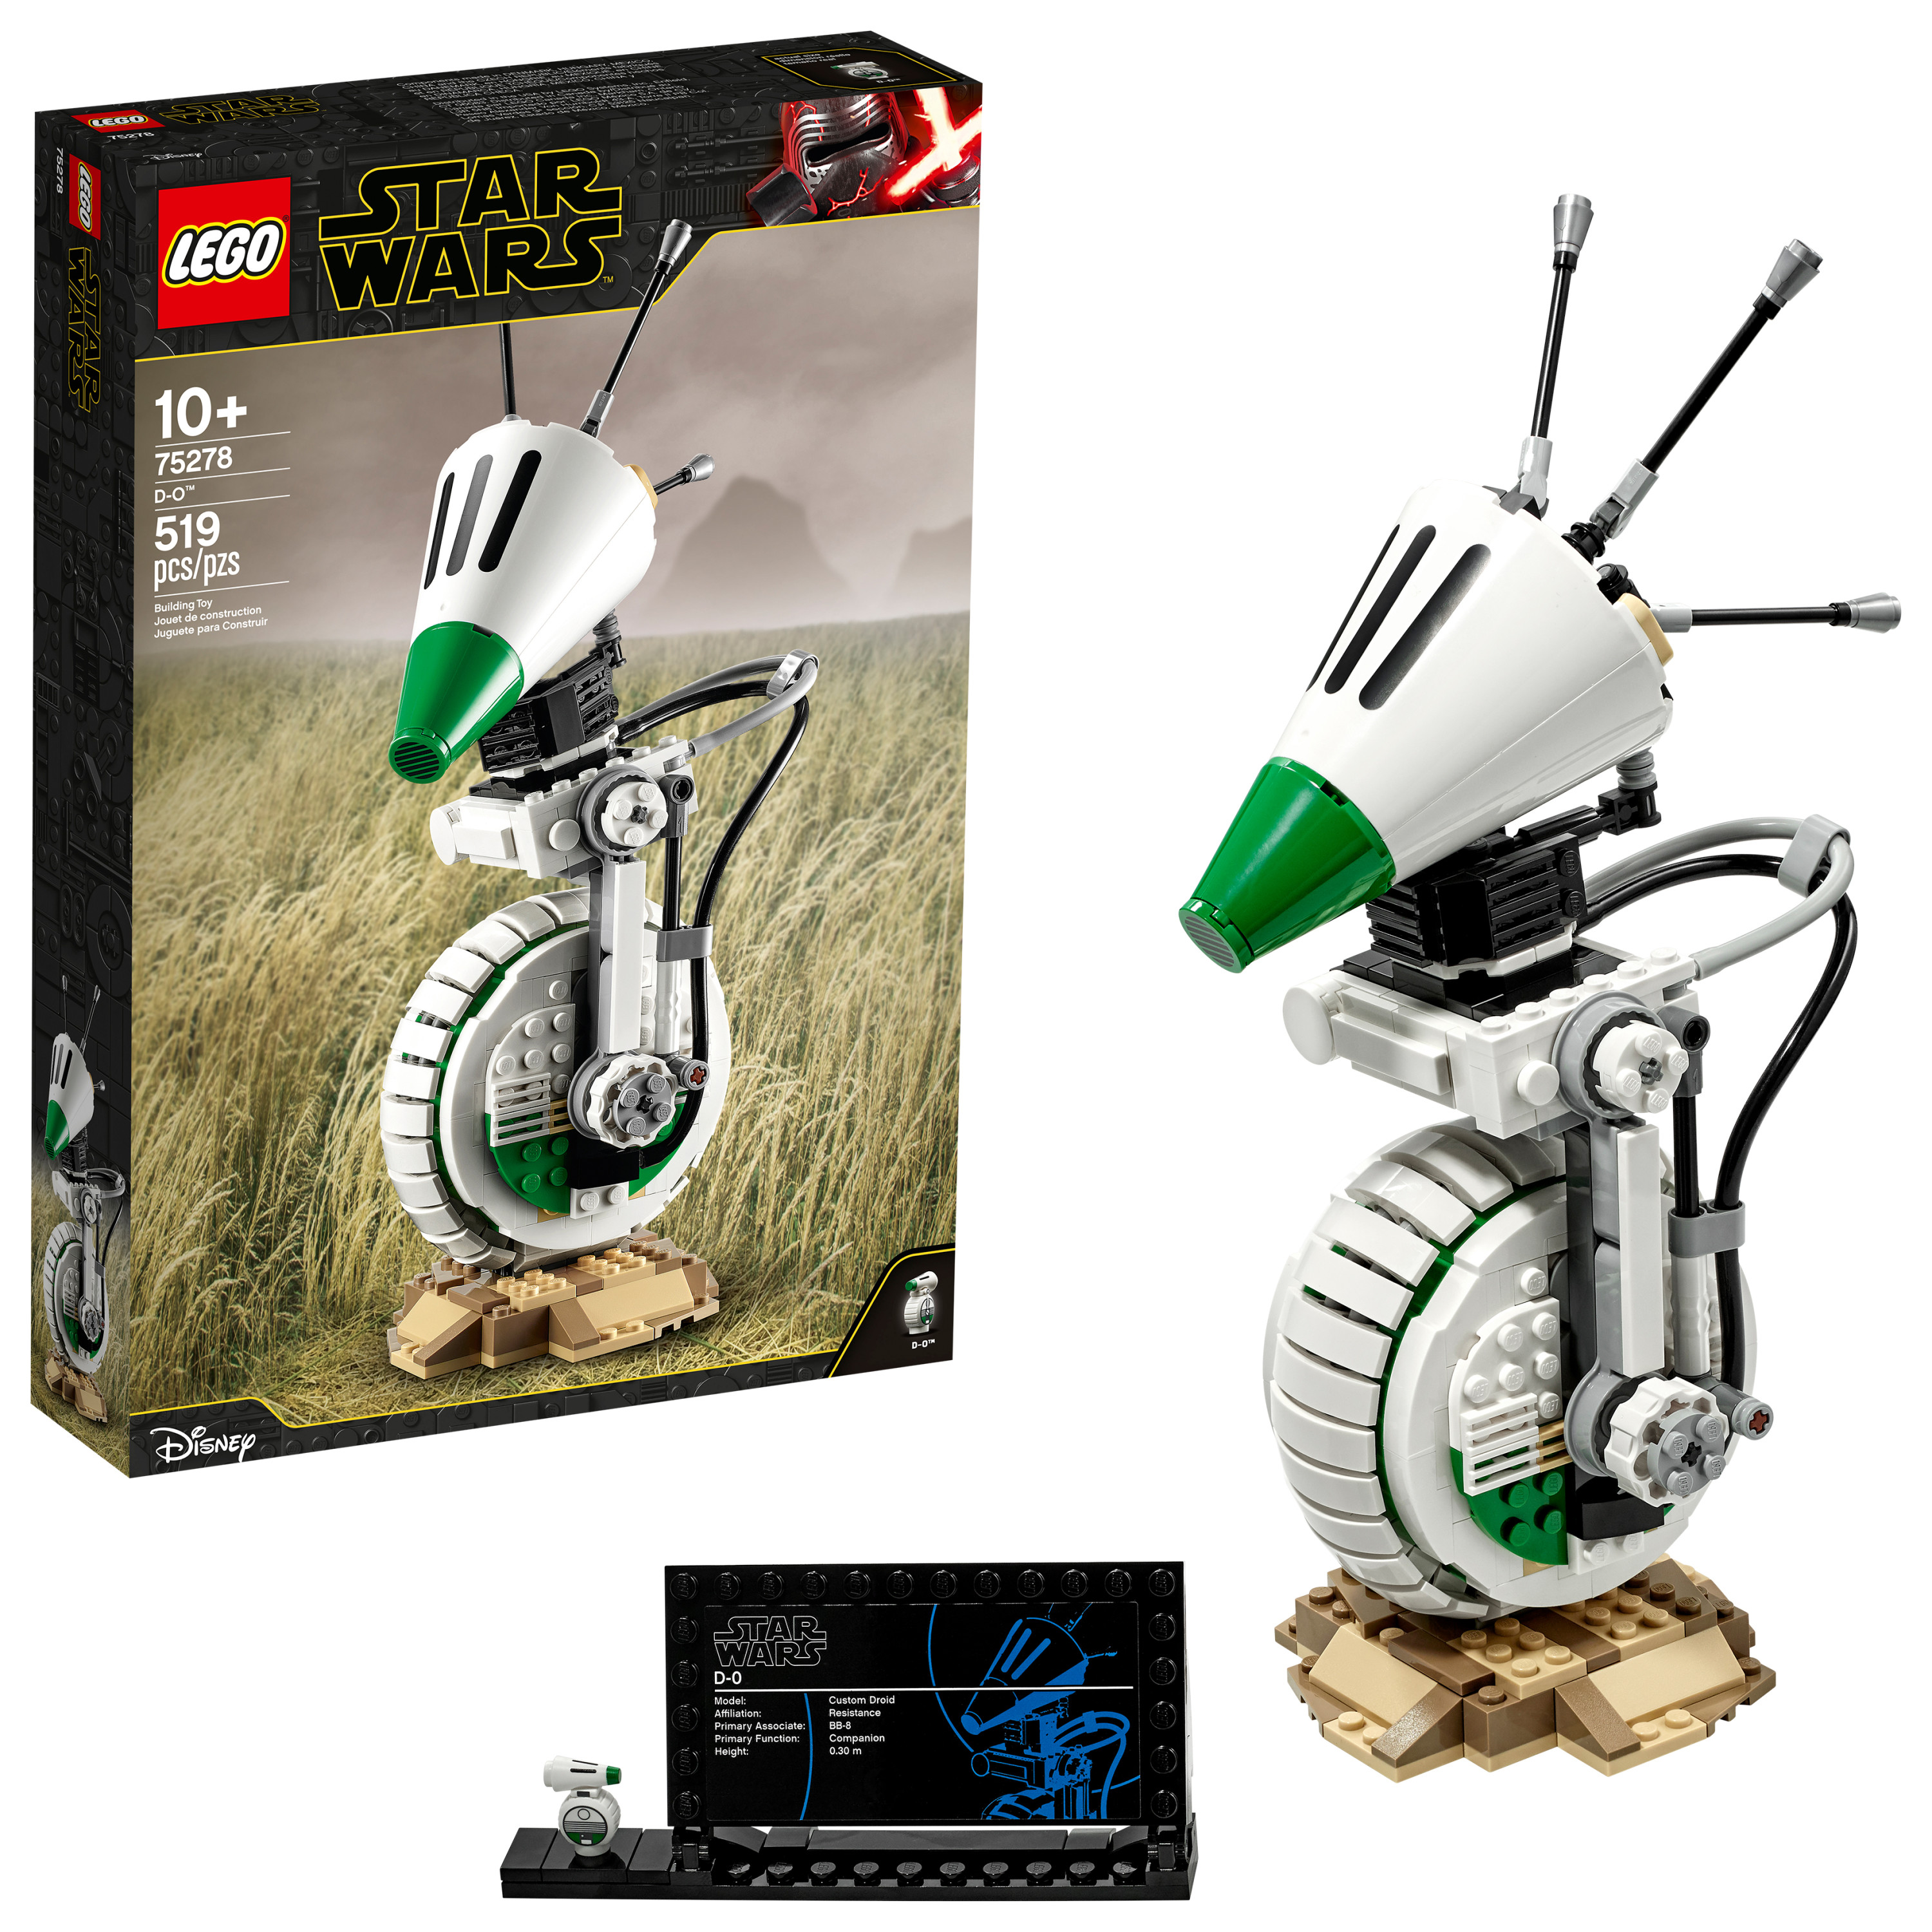 LEGO Star Wars D-O 75278 Building Kit; Cool Star Wars: The Rise of Skywalker Building Toy for Ages 10+ (519 Pieces)